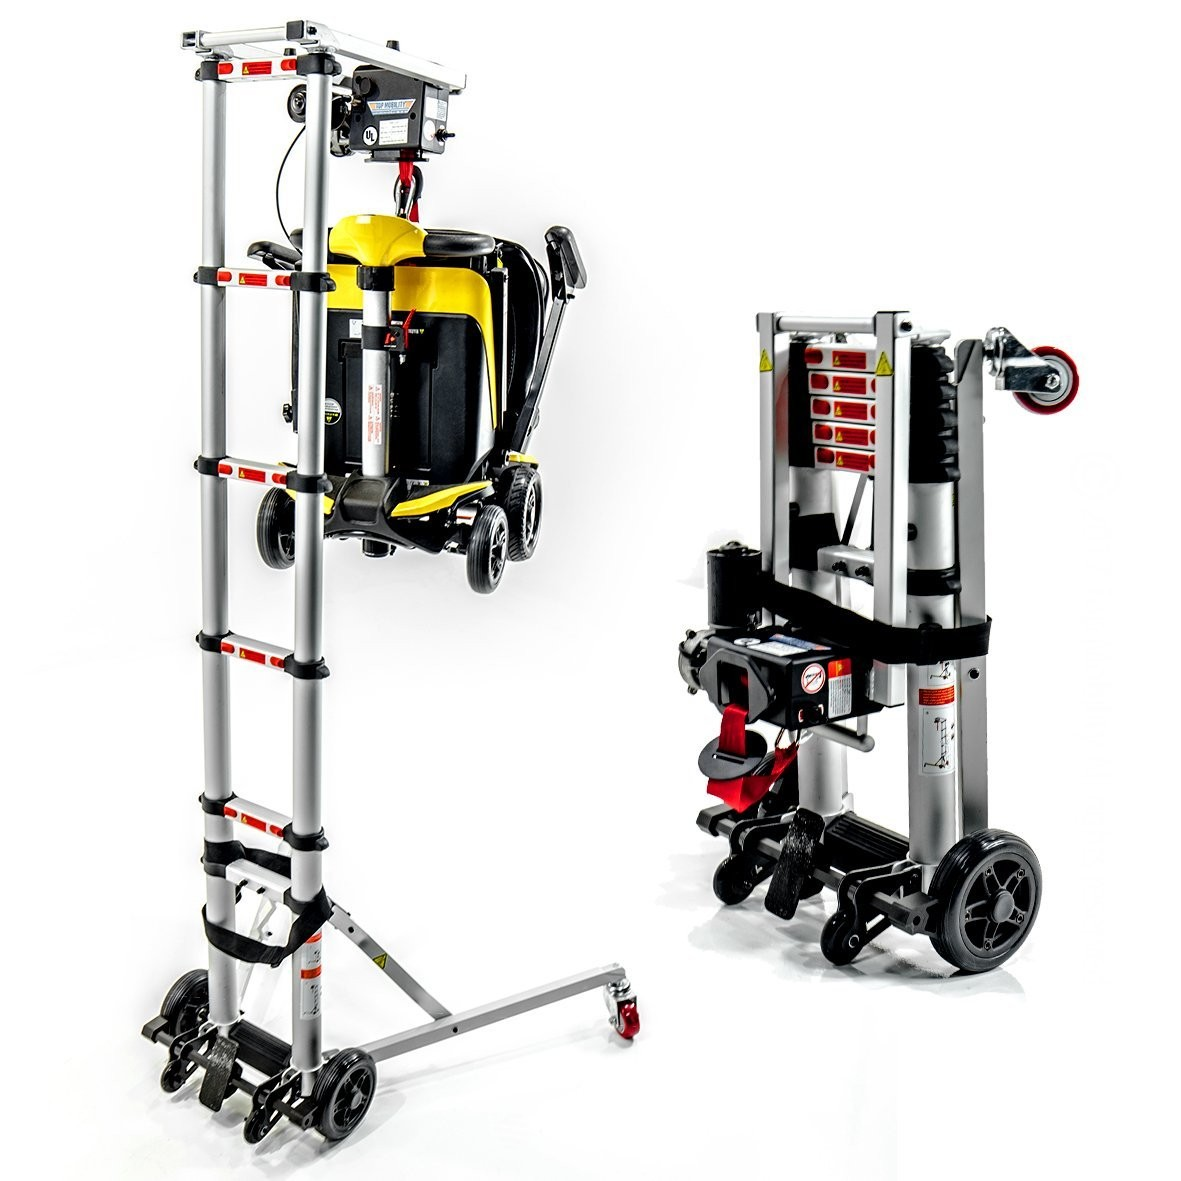 Hercules Portable Automated Lift